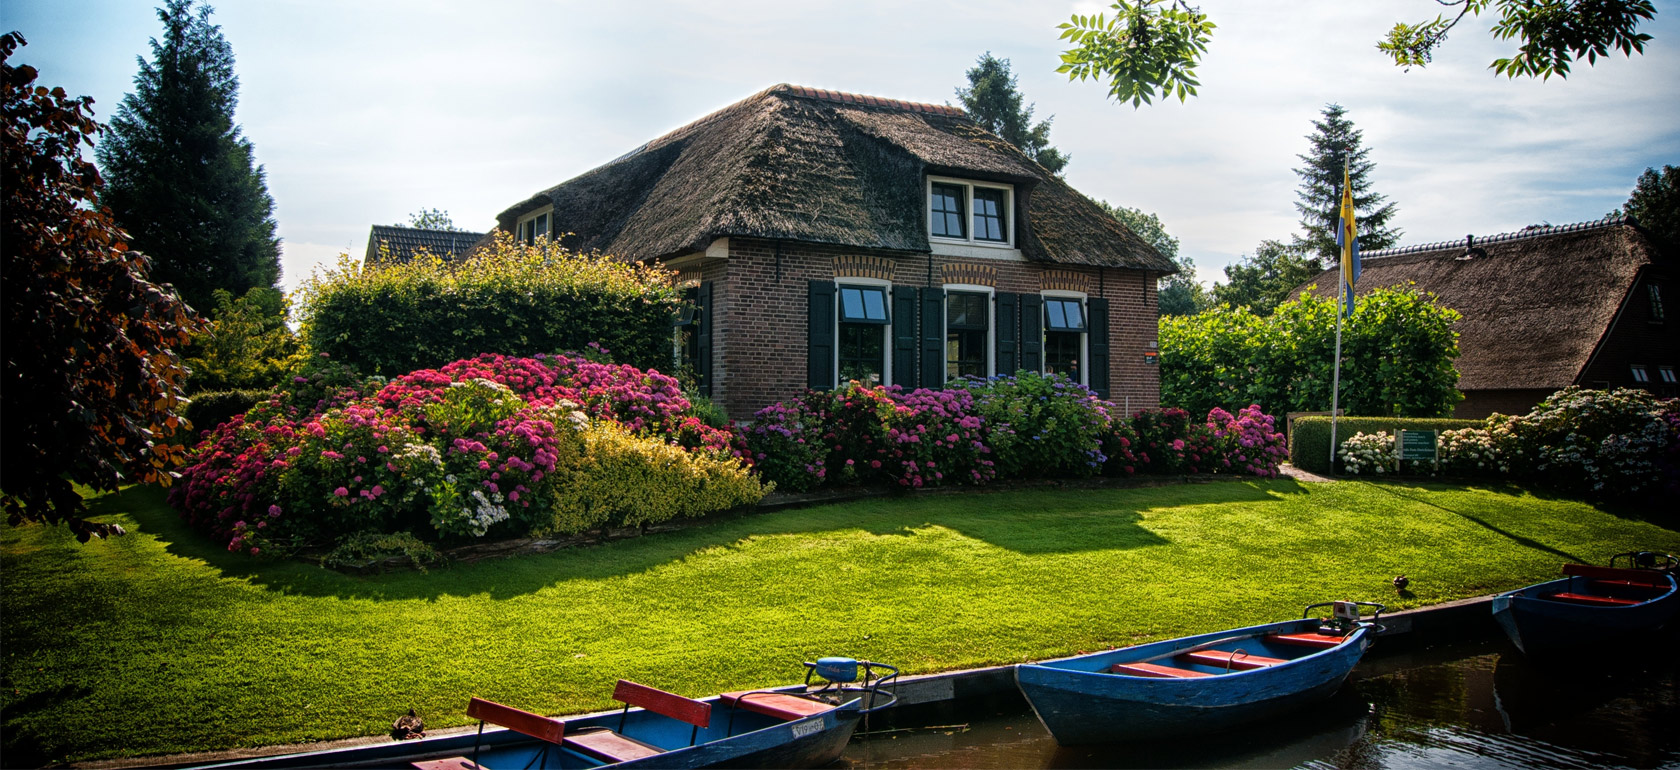 Giethoorn Canal Cruise